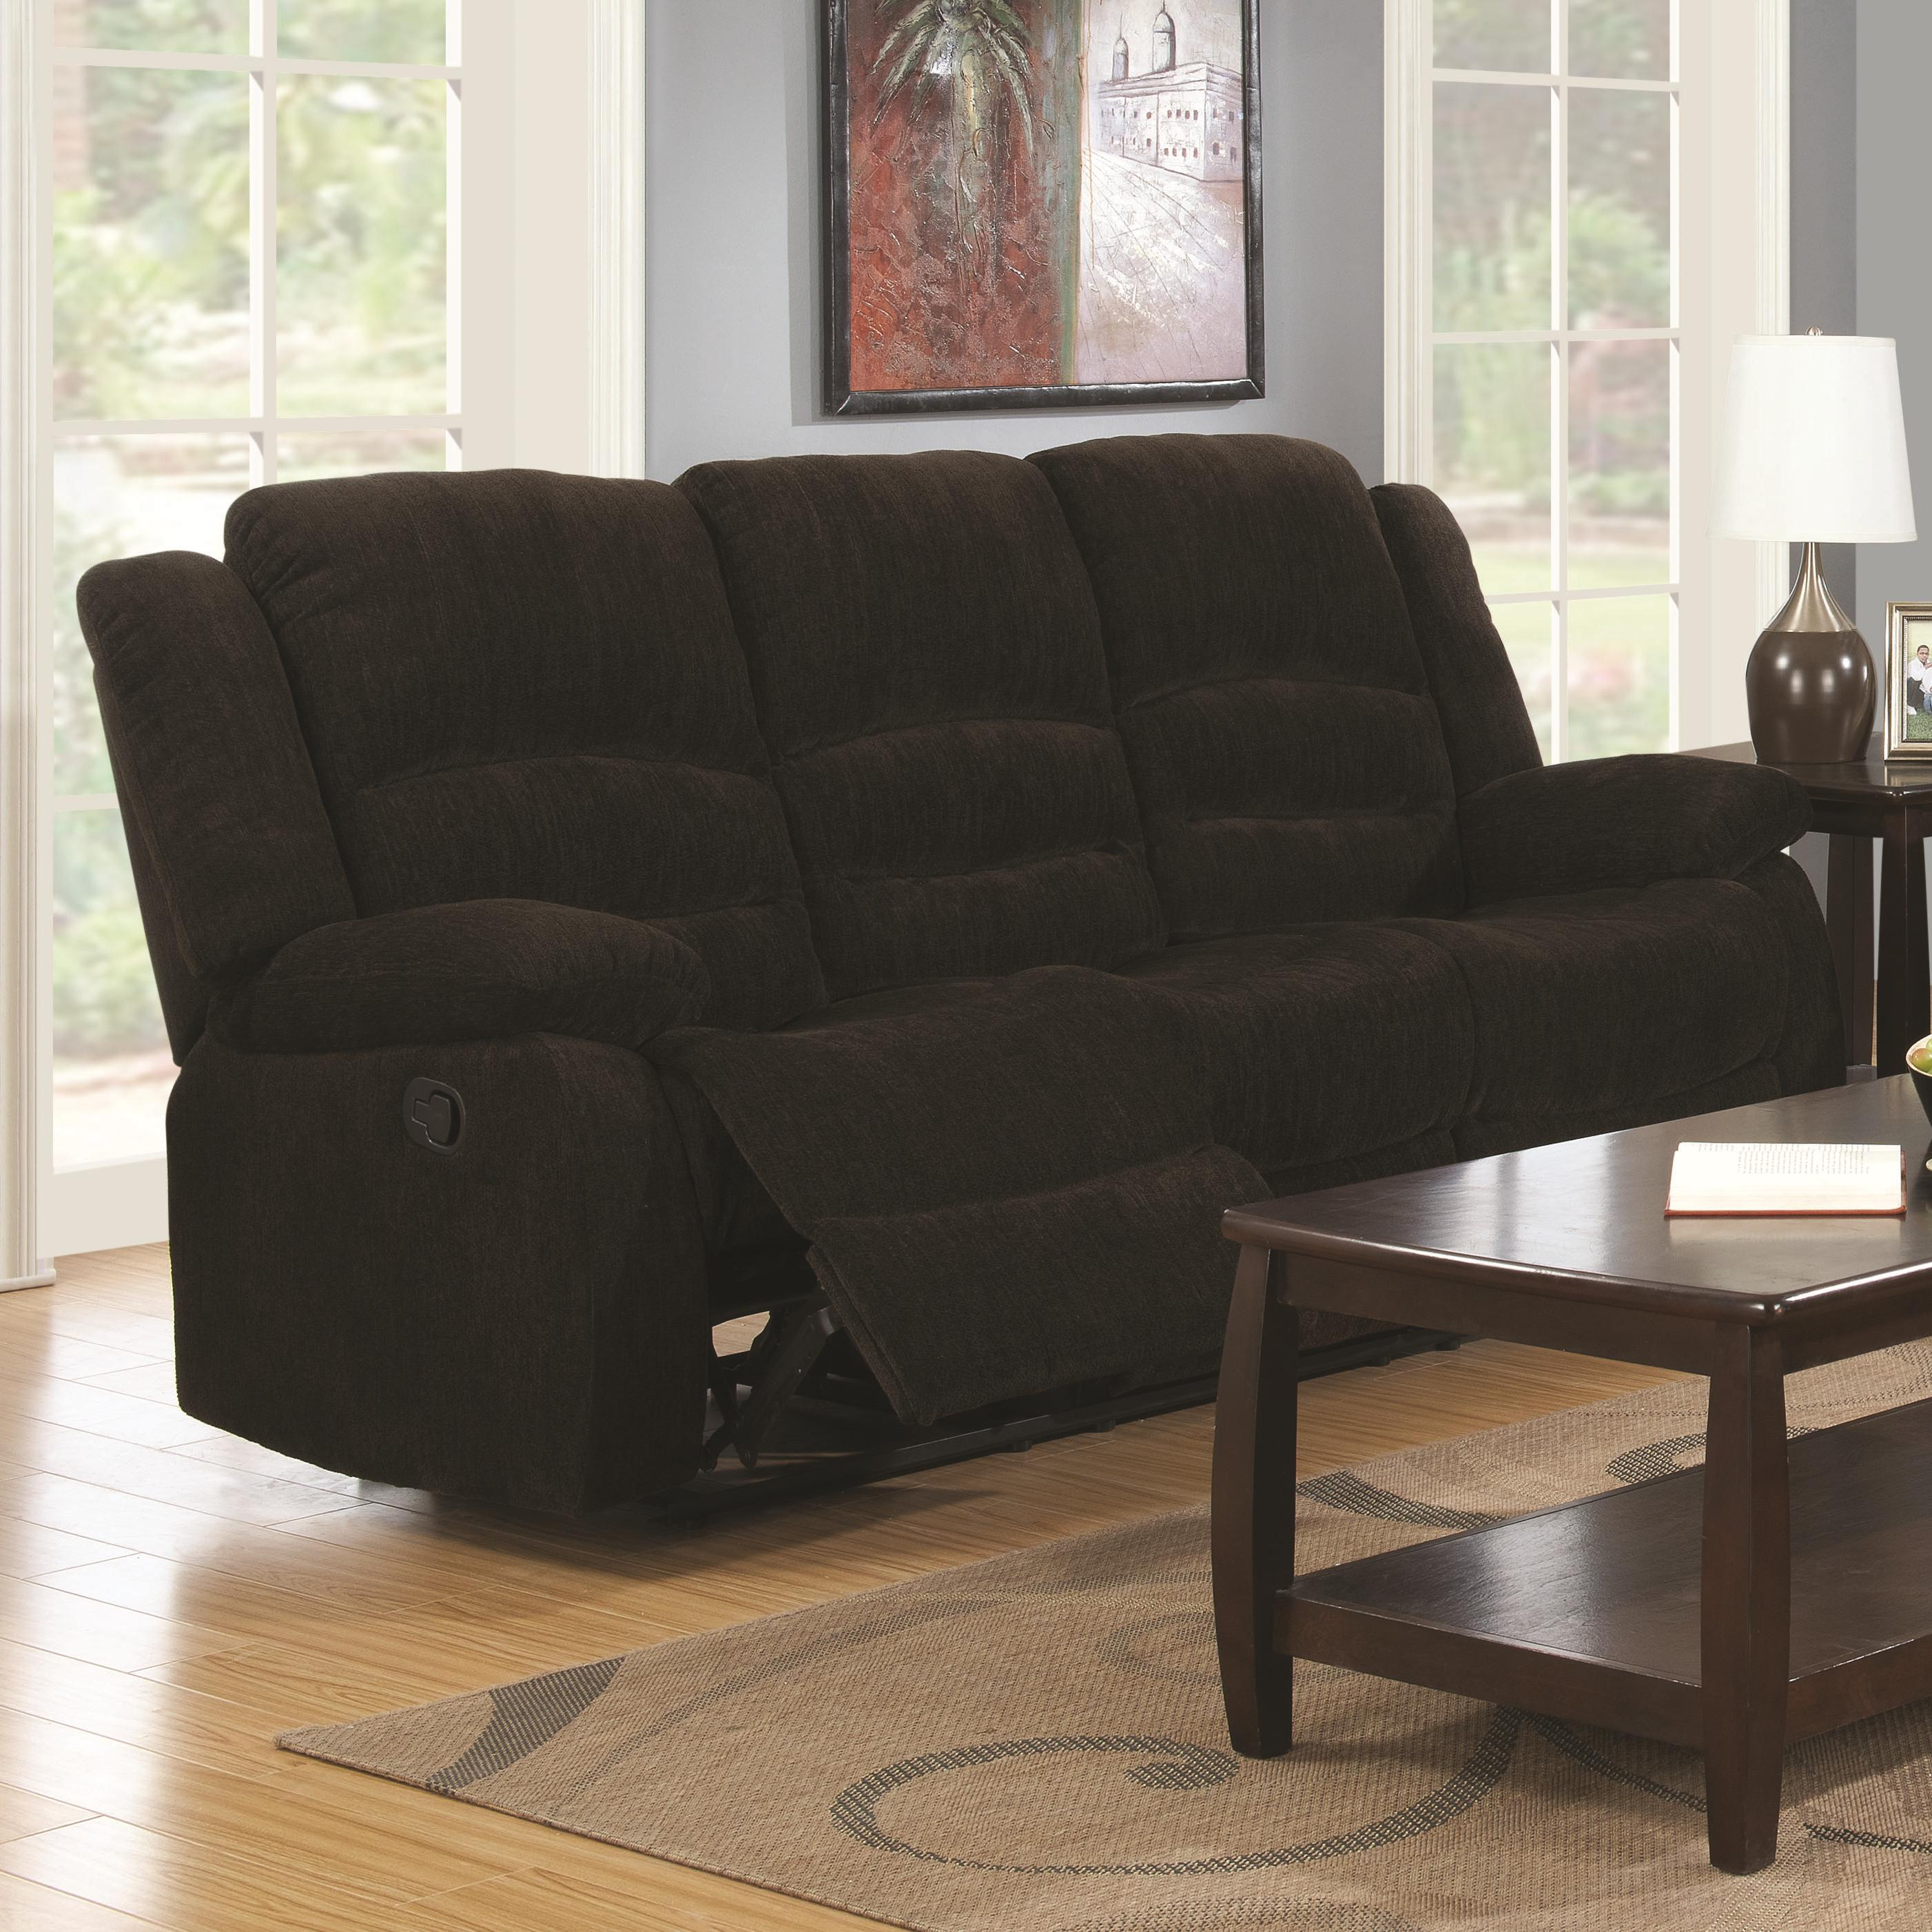 Coaster Gordon Motion Sofa - Item Number: 601461